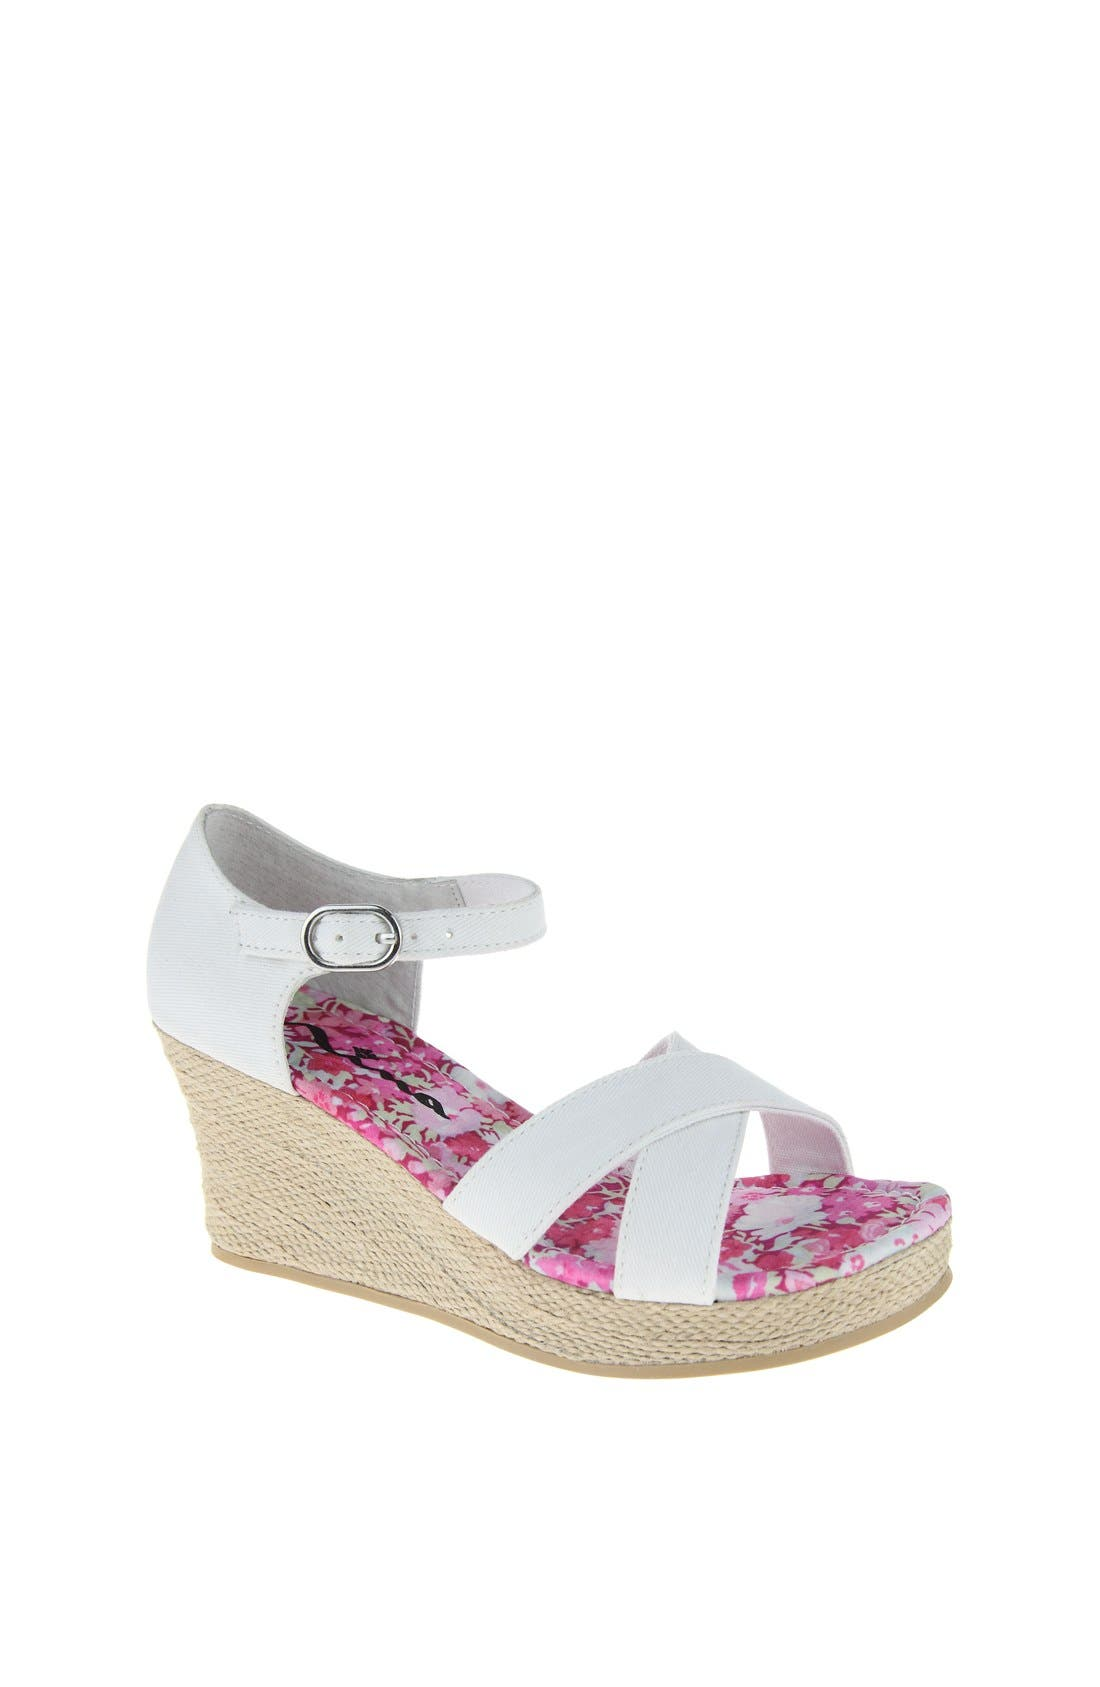 Main Image - Nina 'Ailani' Wedge Sandal (Little Kid & Big Kid)